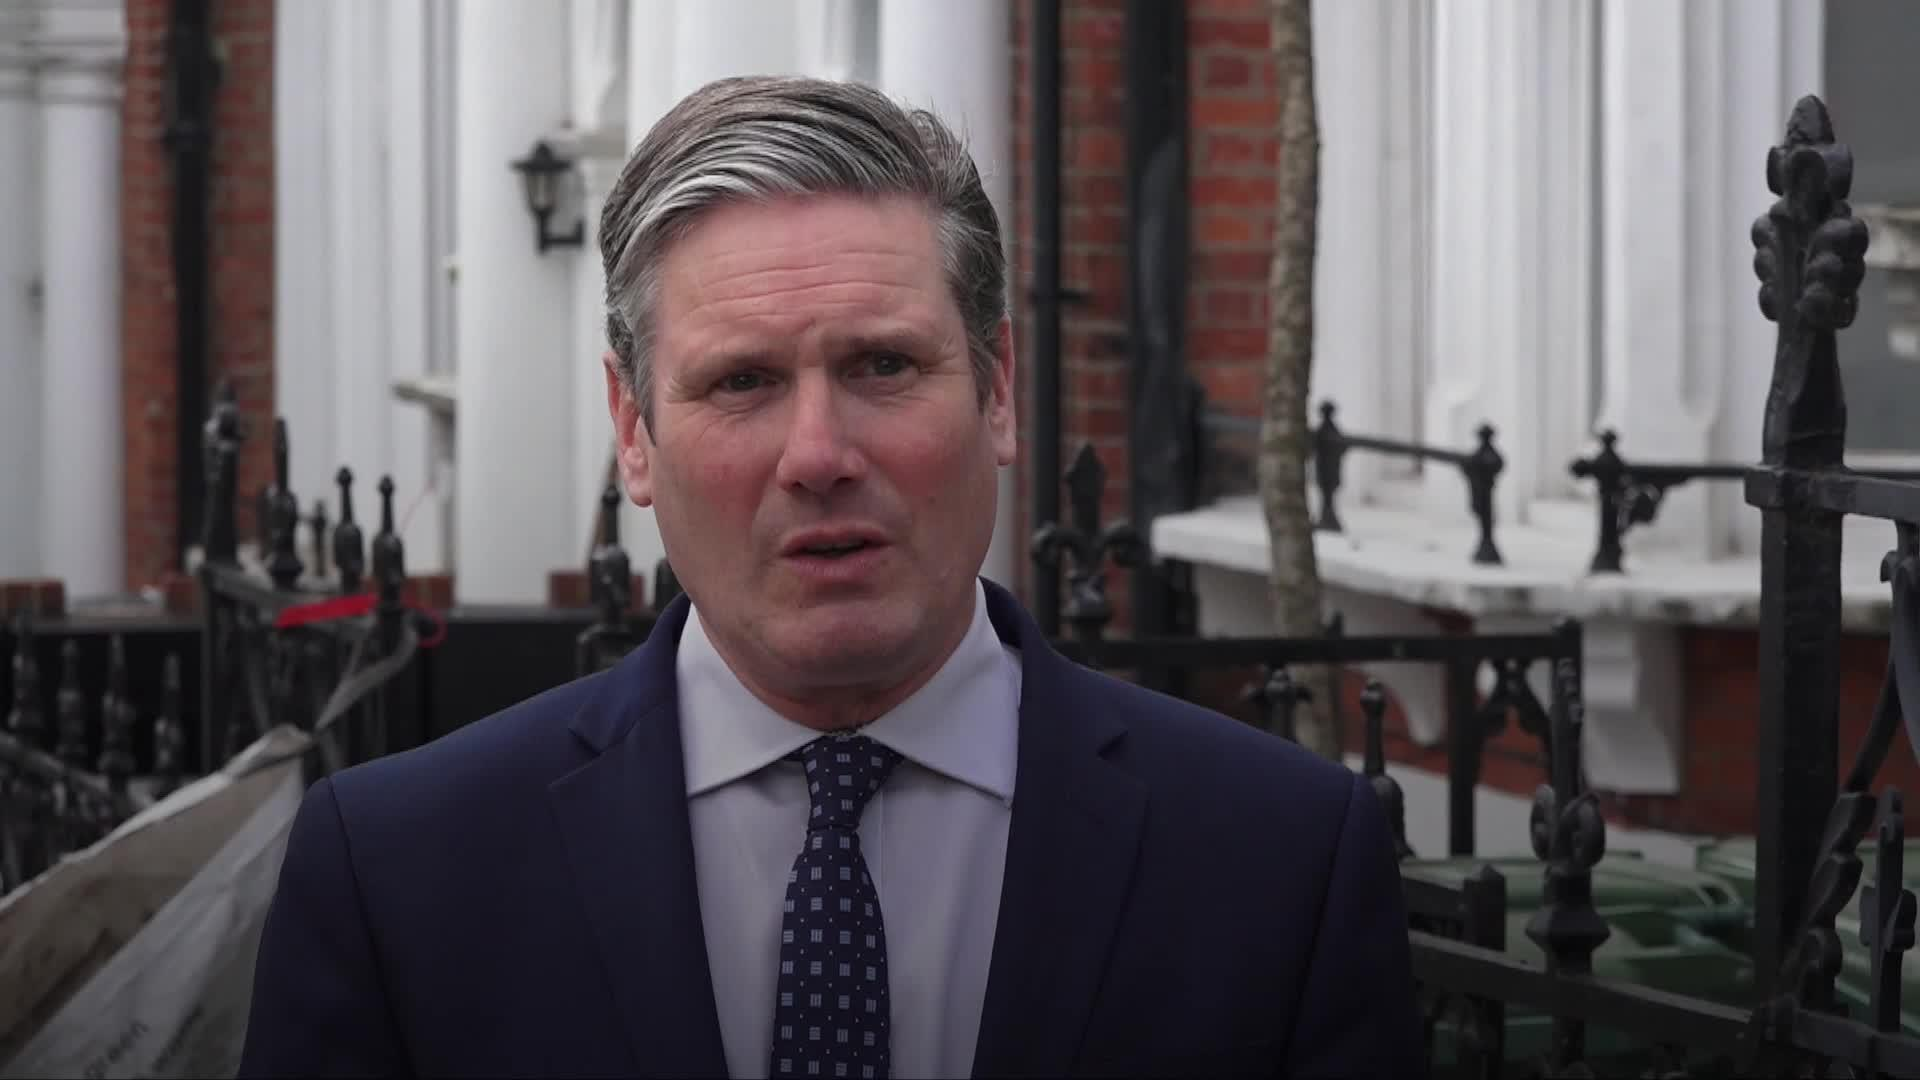 Sir Keir Starmer: UK cannot lift restrictions until coronavirus is under control